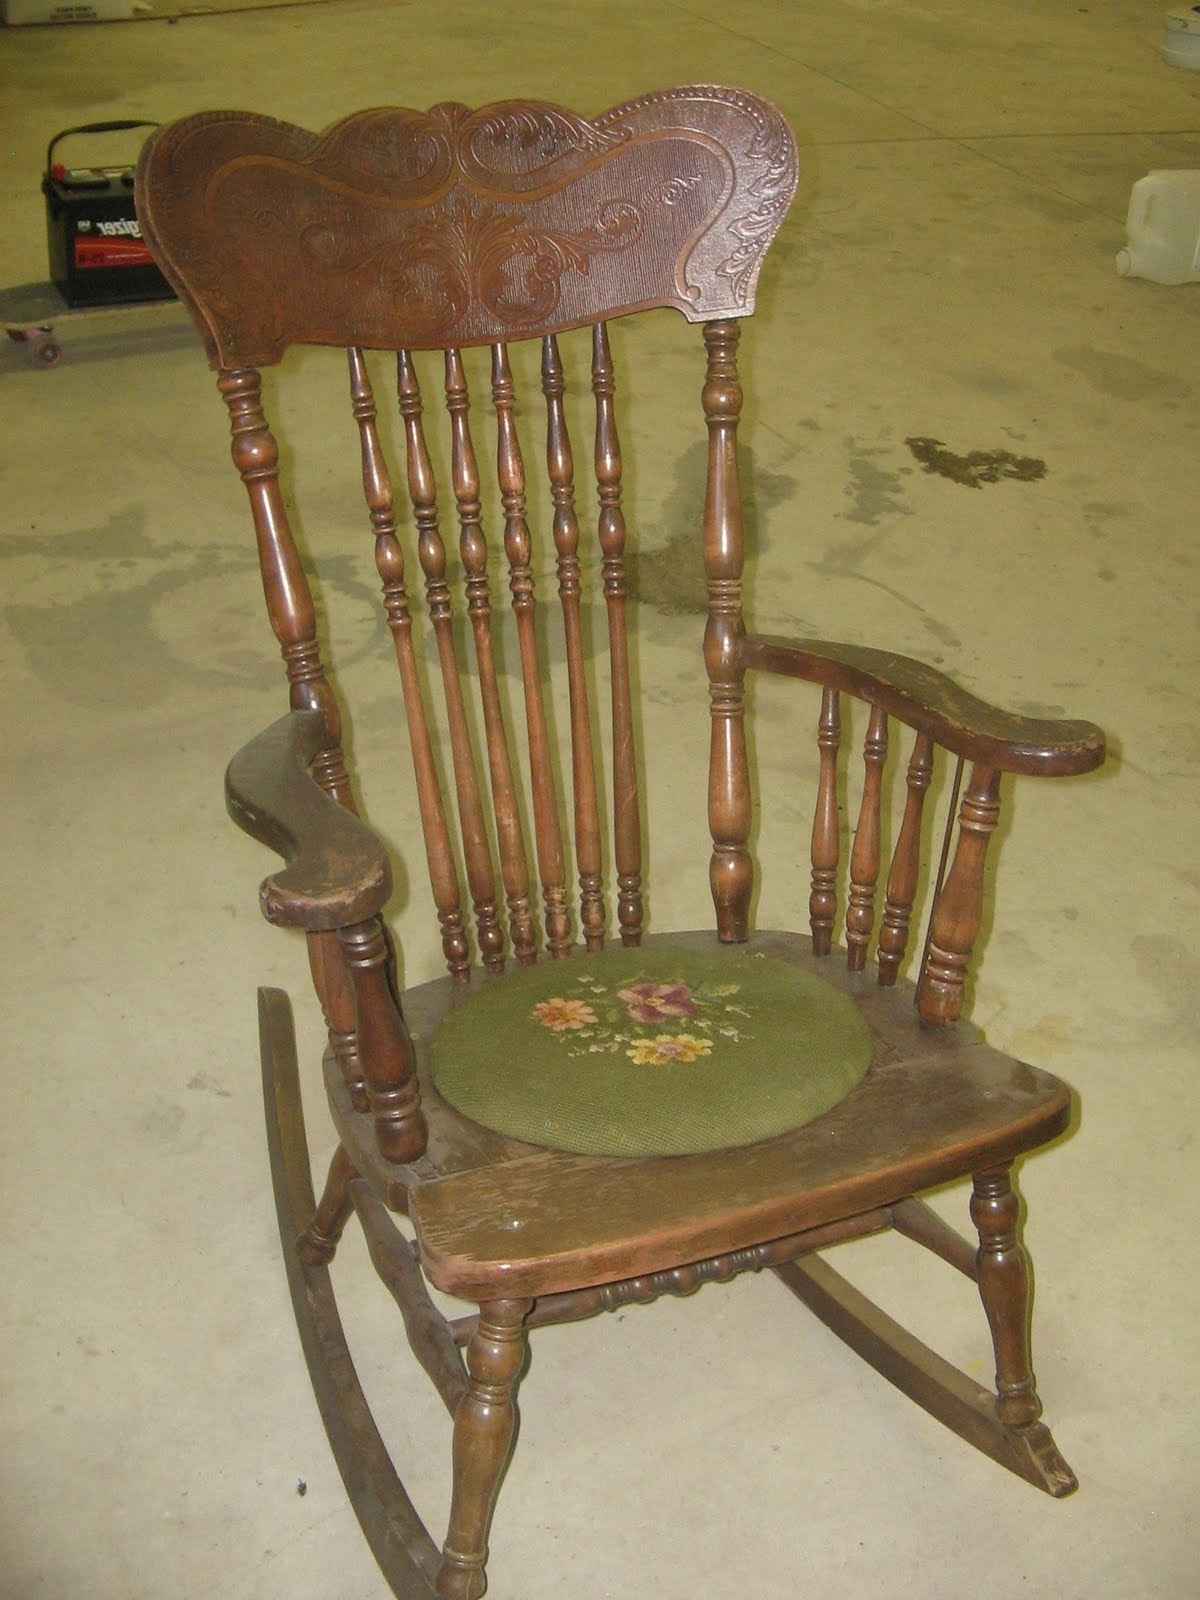 Antique Rocking Chairs Inside Well Liked Ideas Antique Rocking Chairs — Weekly Geek Design : Antique Rocking (View 12 of 15)